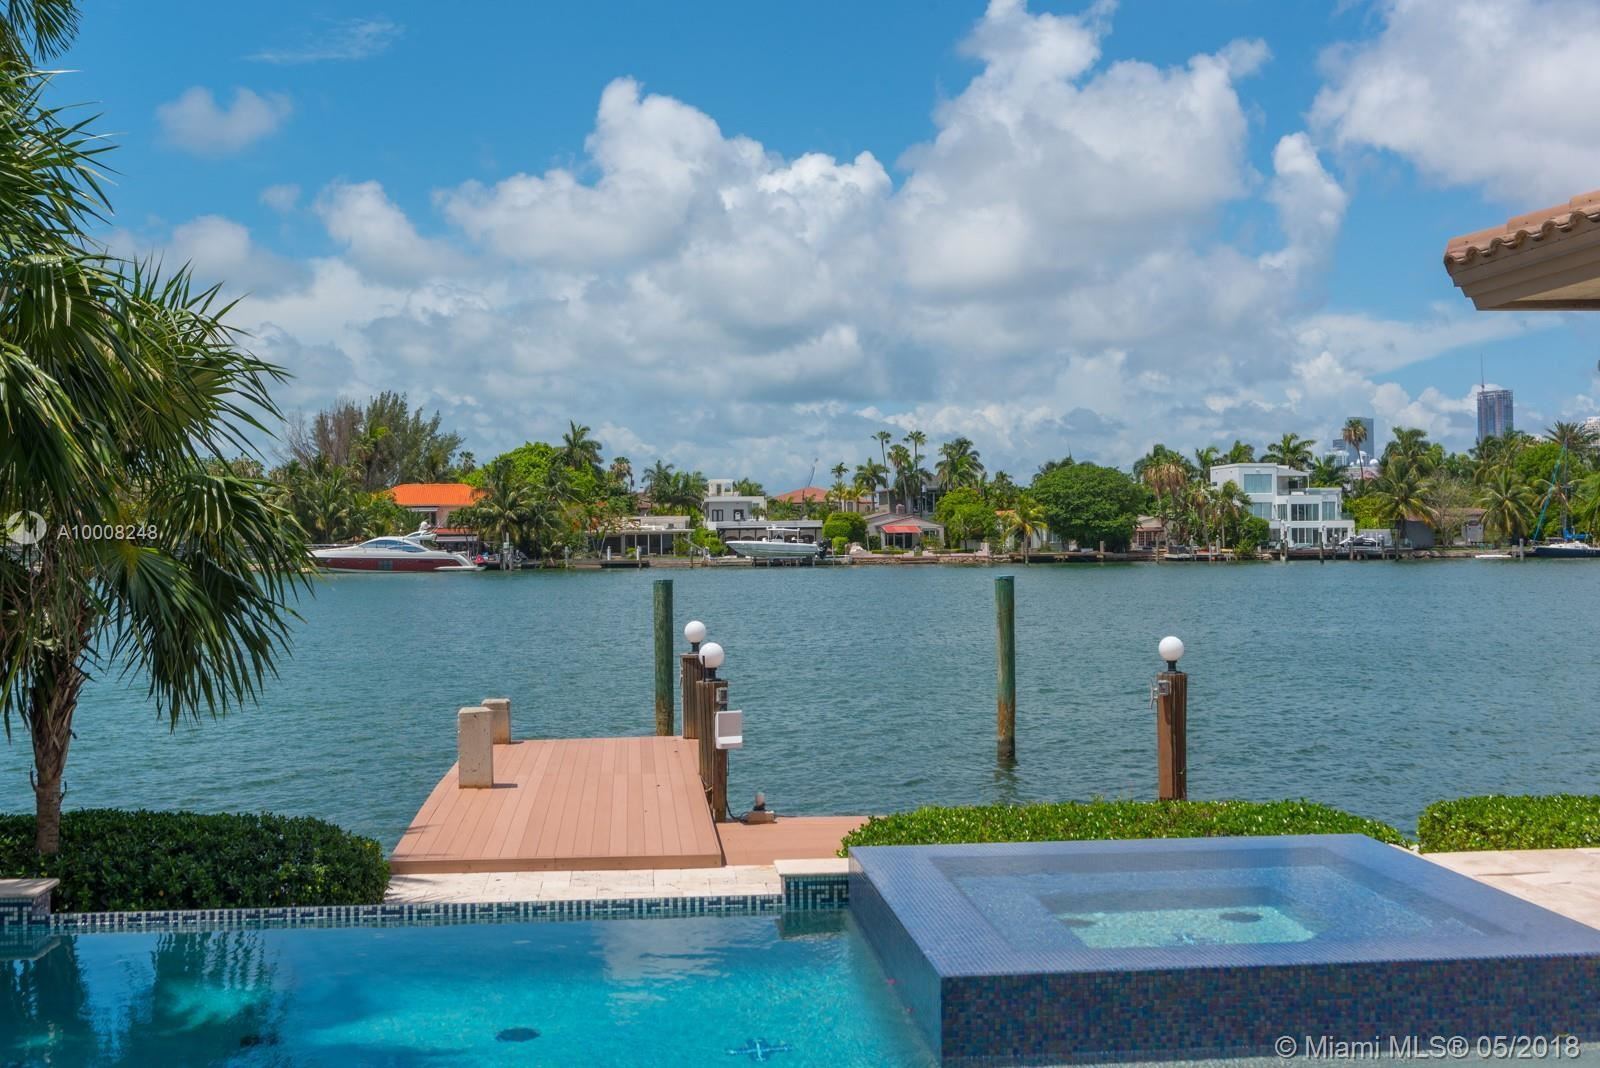 Photo 27 of Listing MLS a10008248 in 280 S HIBISCUS DR Miami Beach FL 33139